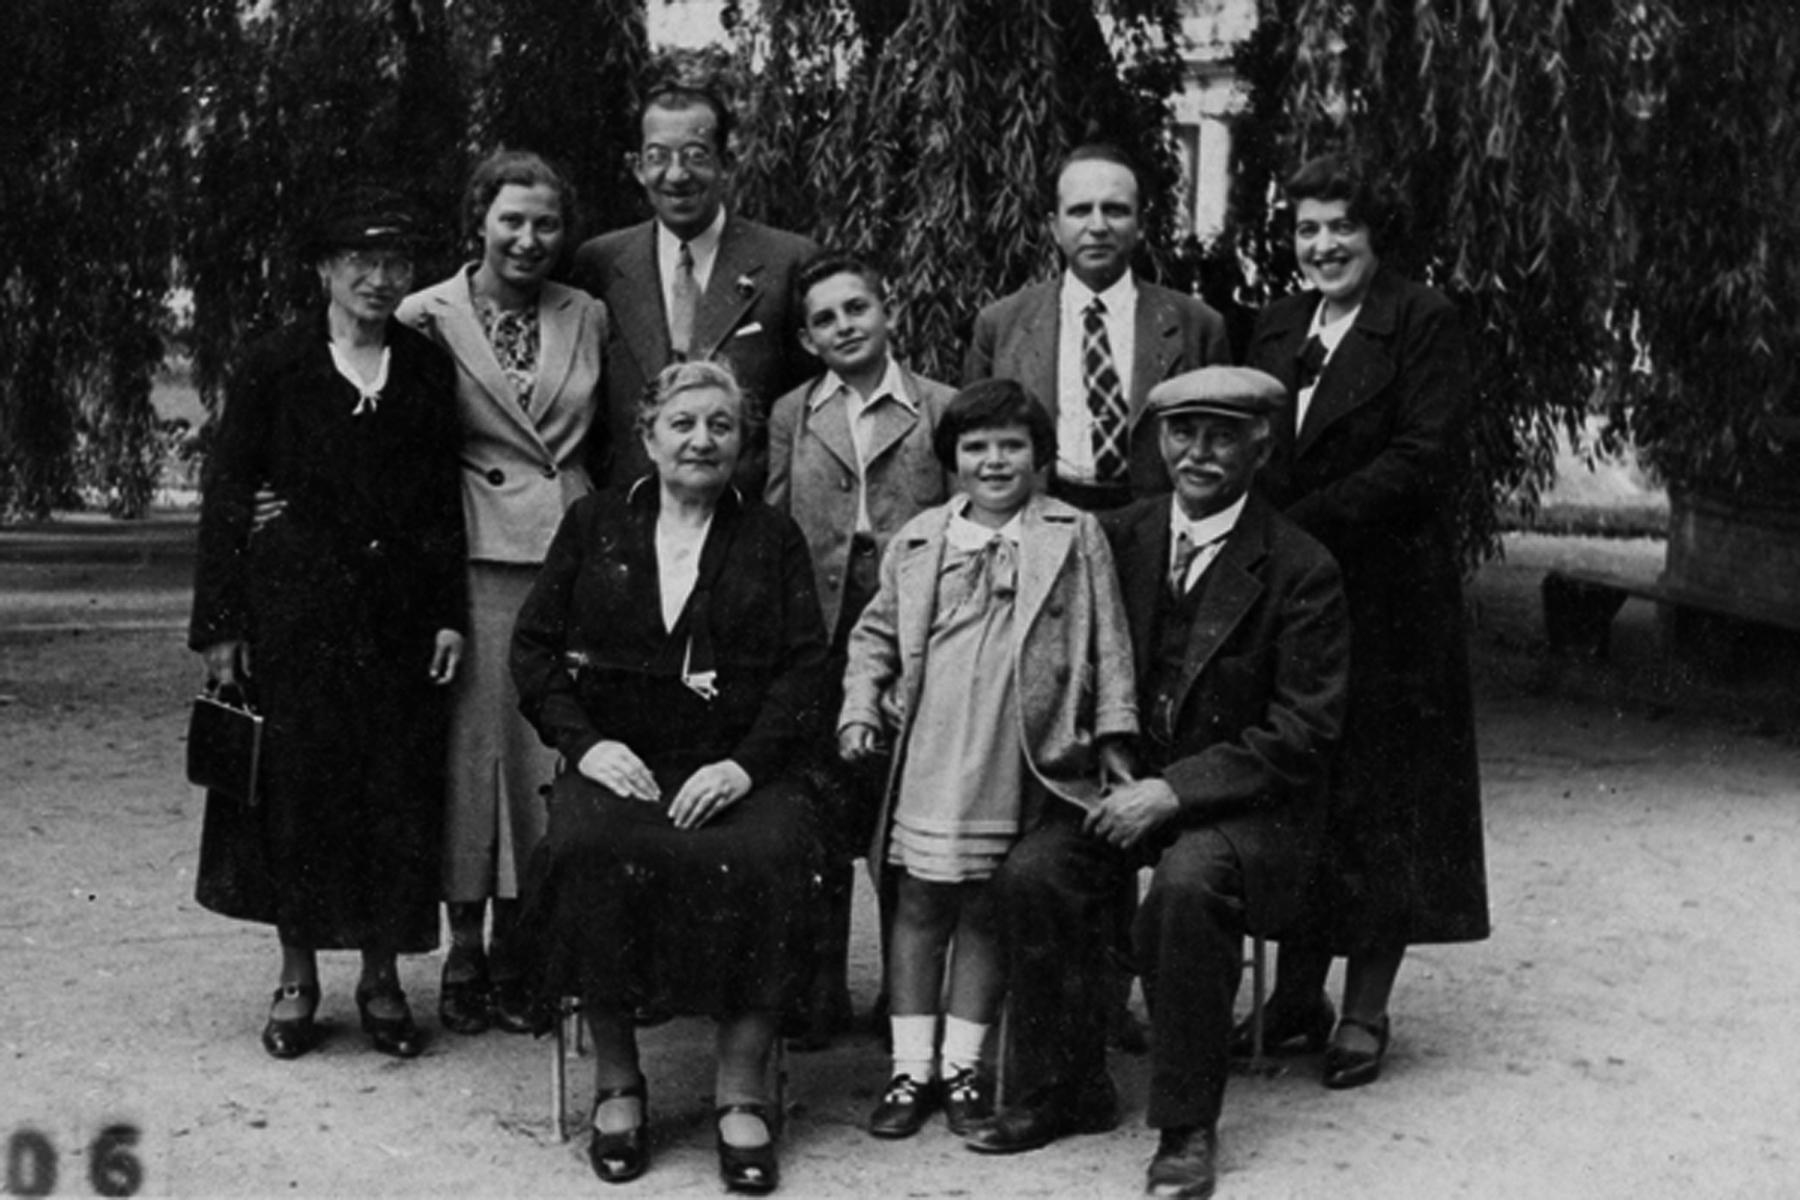 Novak family in the Czech Republic, 1935.